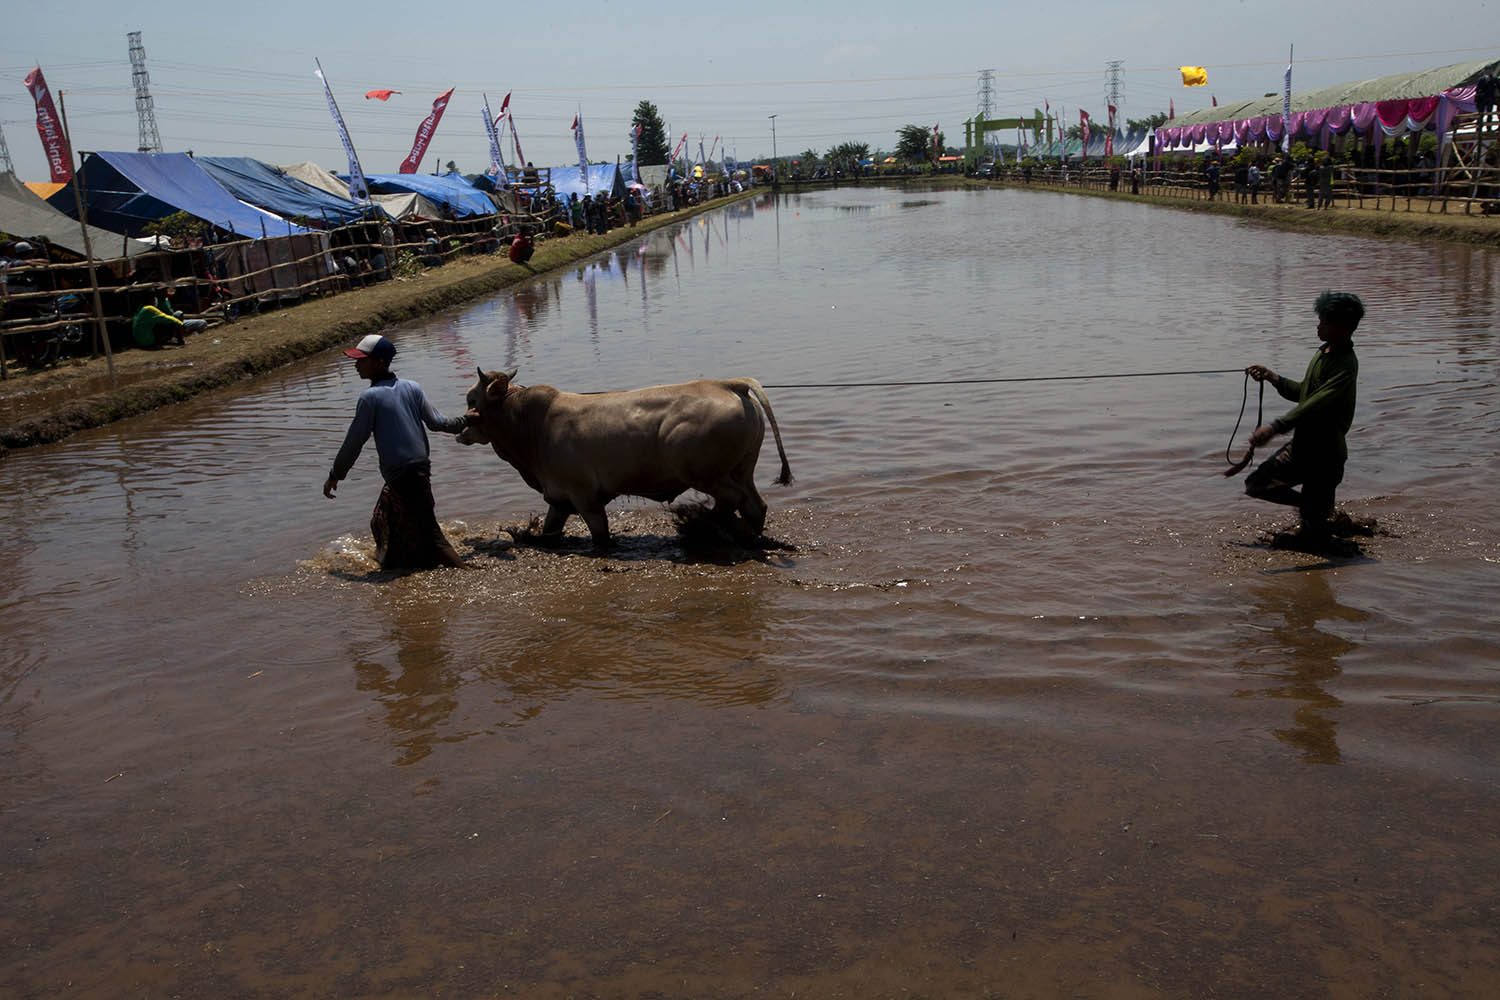 Two participants move a bull across the arena. JP/Sigit Pamungkas